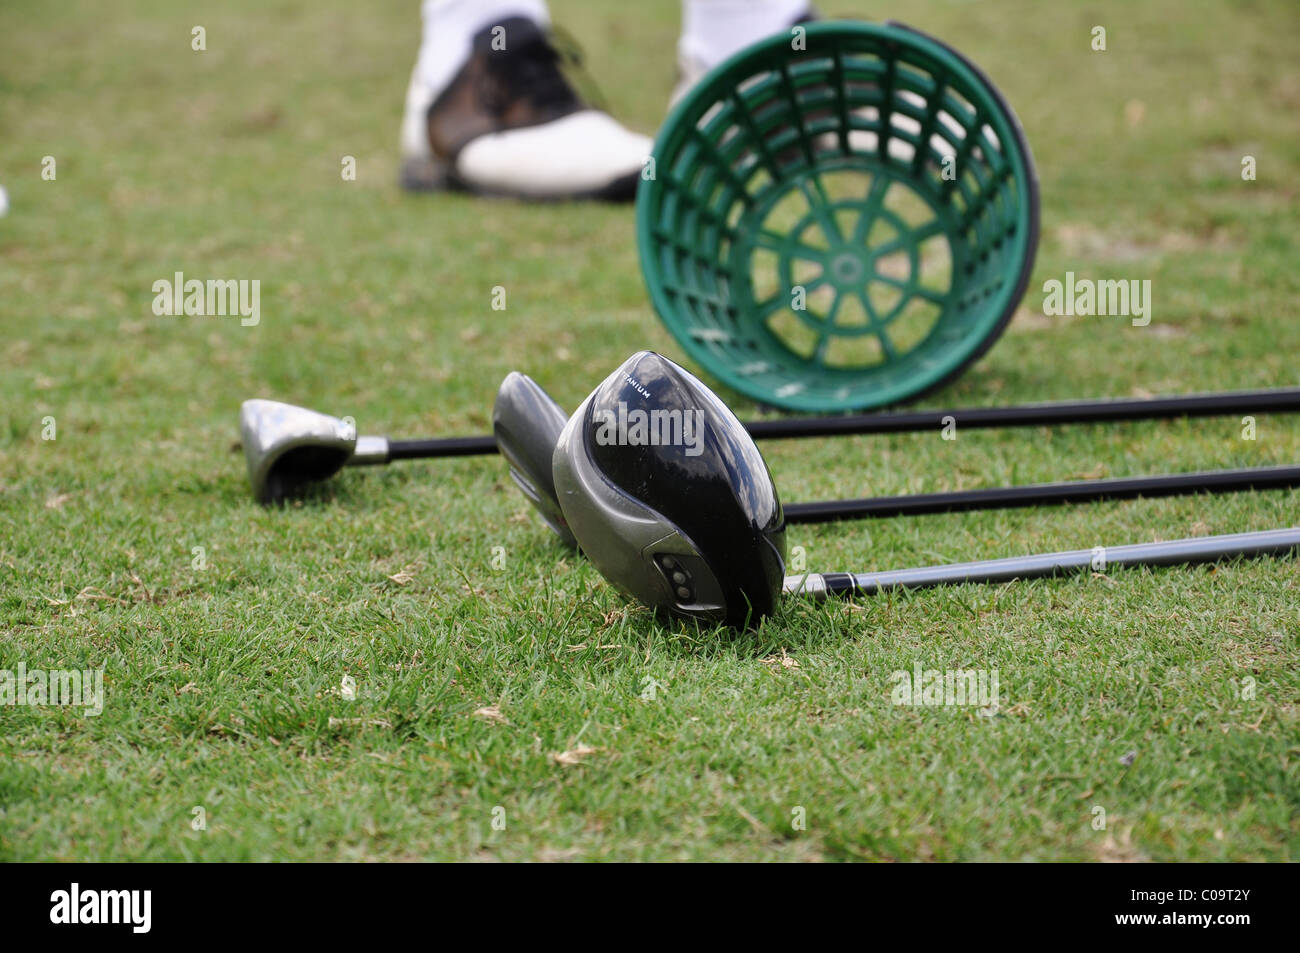 Golf Clubs at the driving range - Stock Image